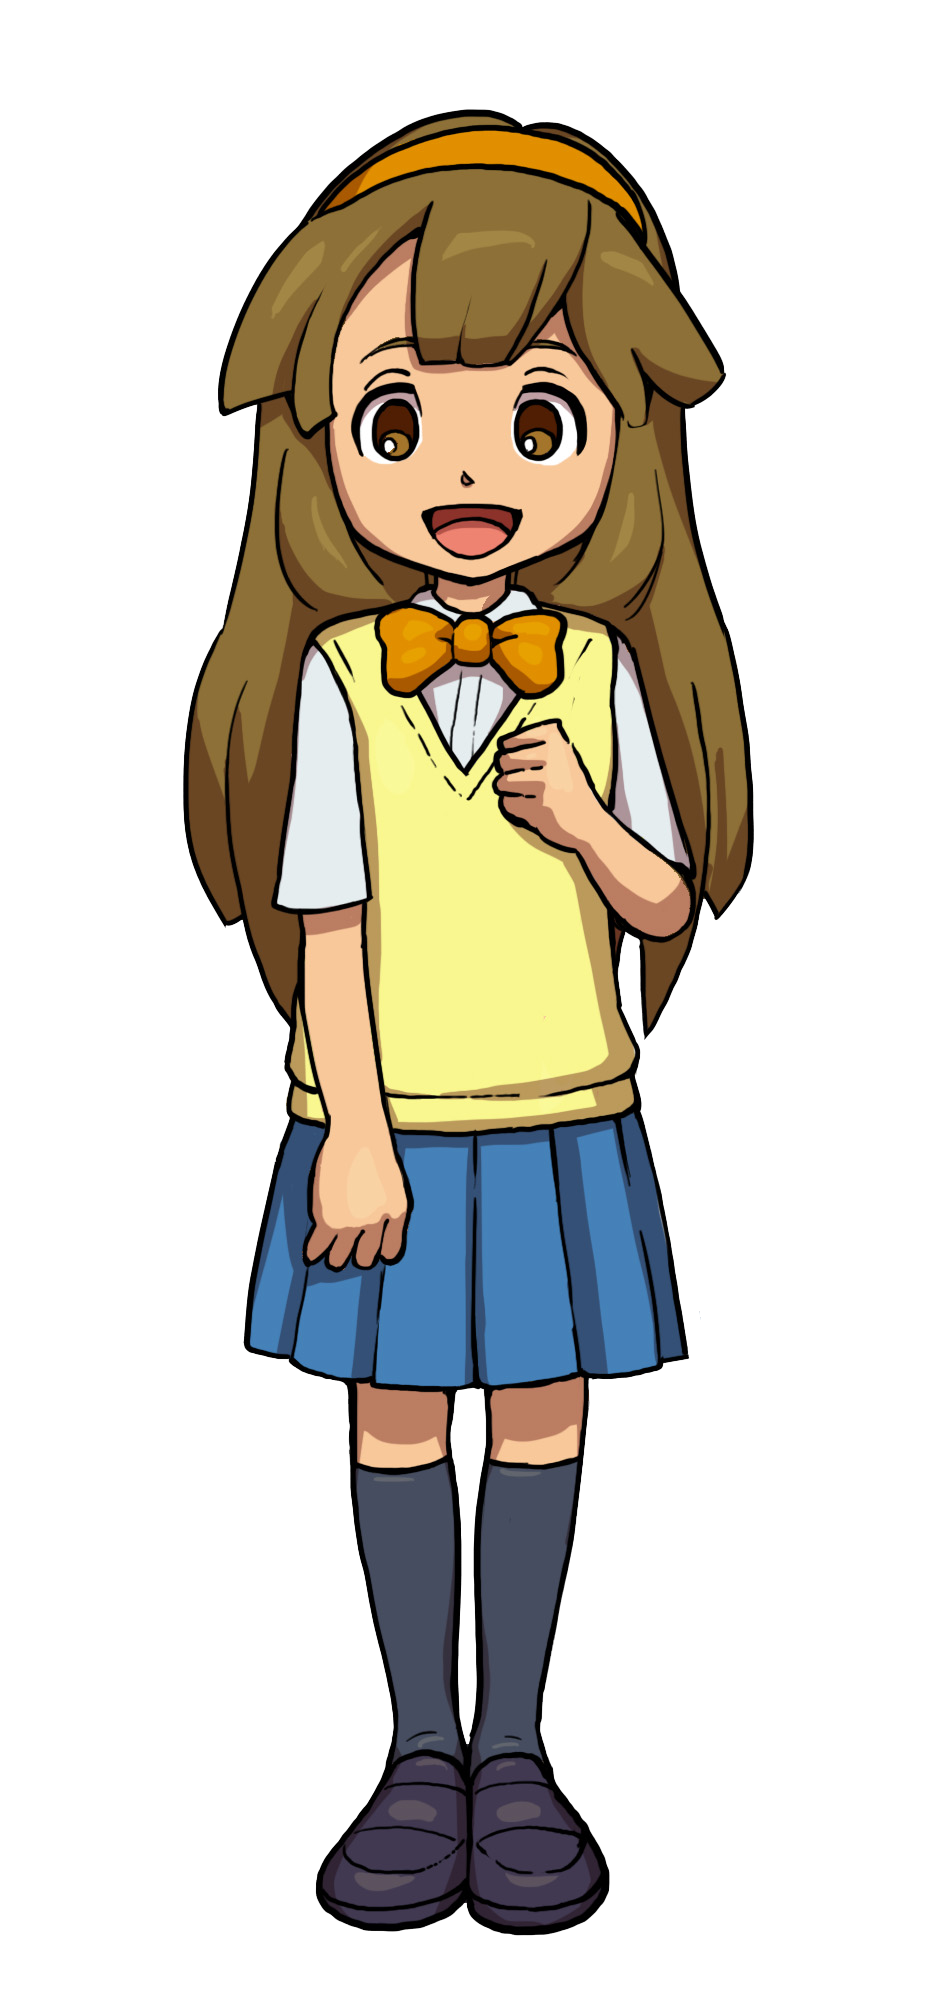 clip freeuse download Inazuma eleven go chrono. Transparent character.